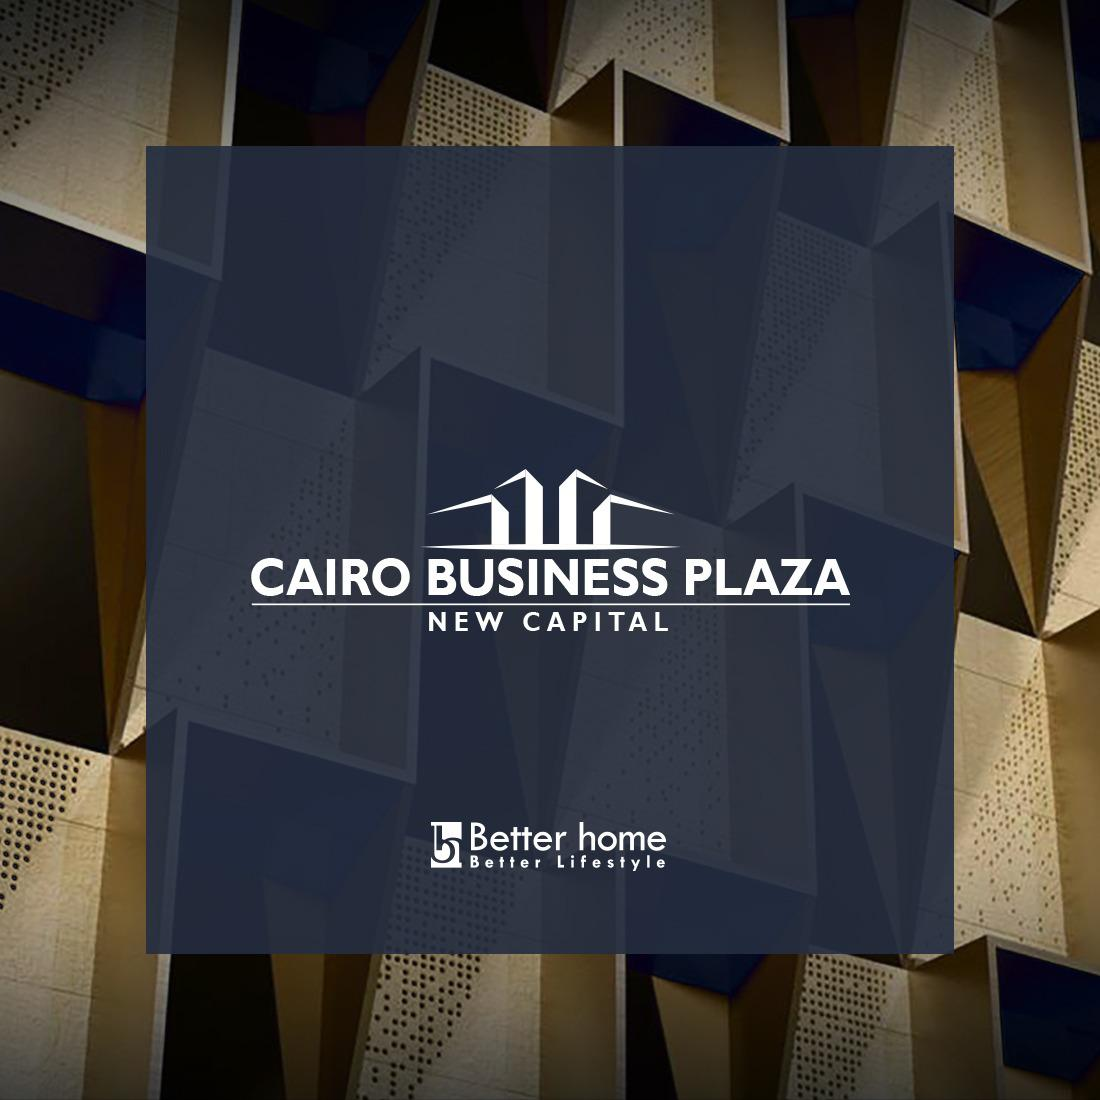 Cairo Business Plaza